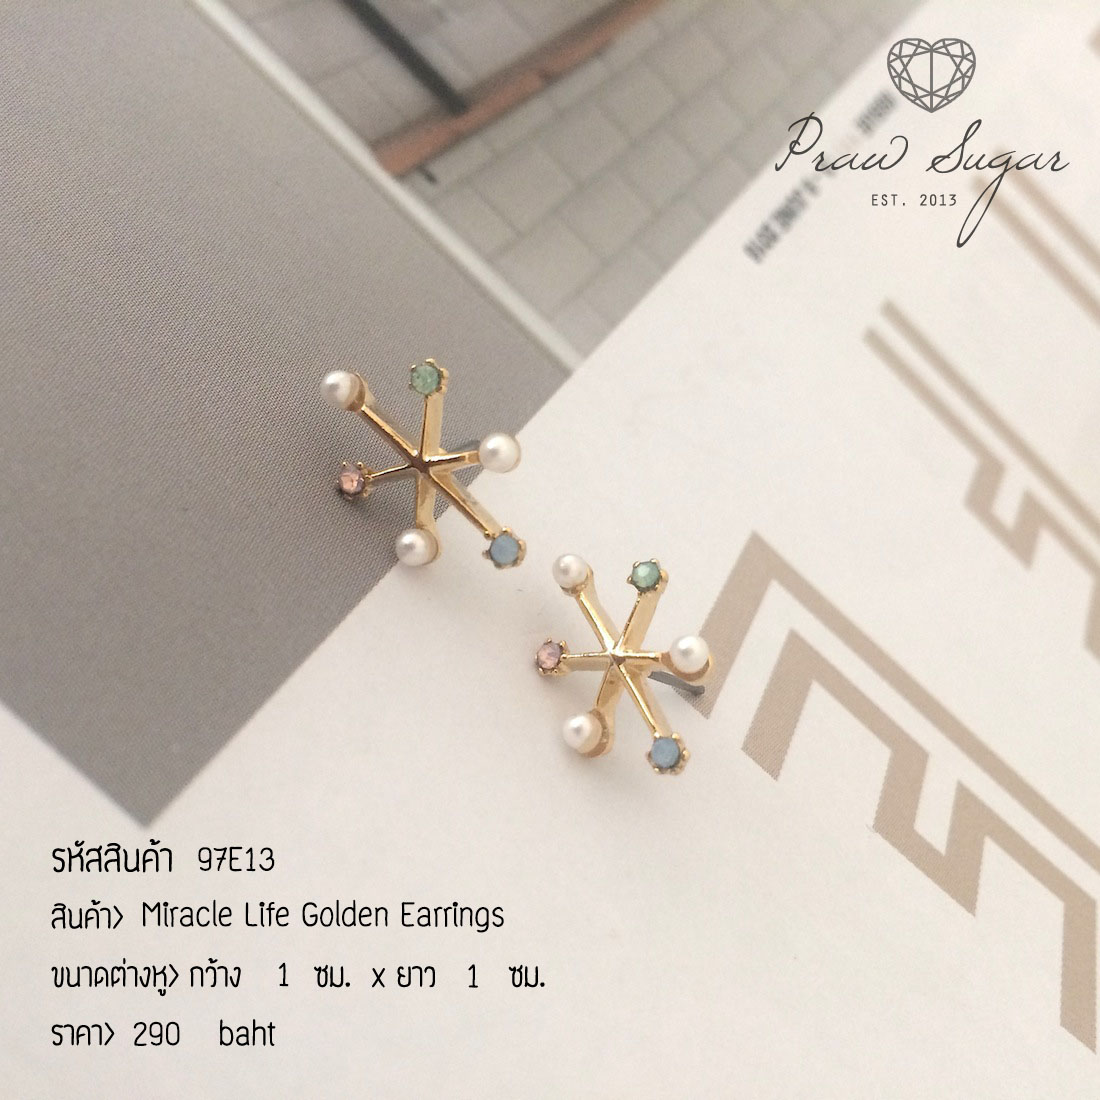 Miracle Life Golden Earrings